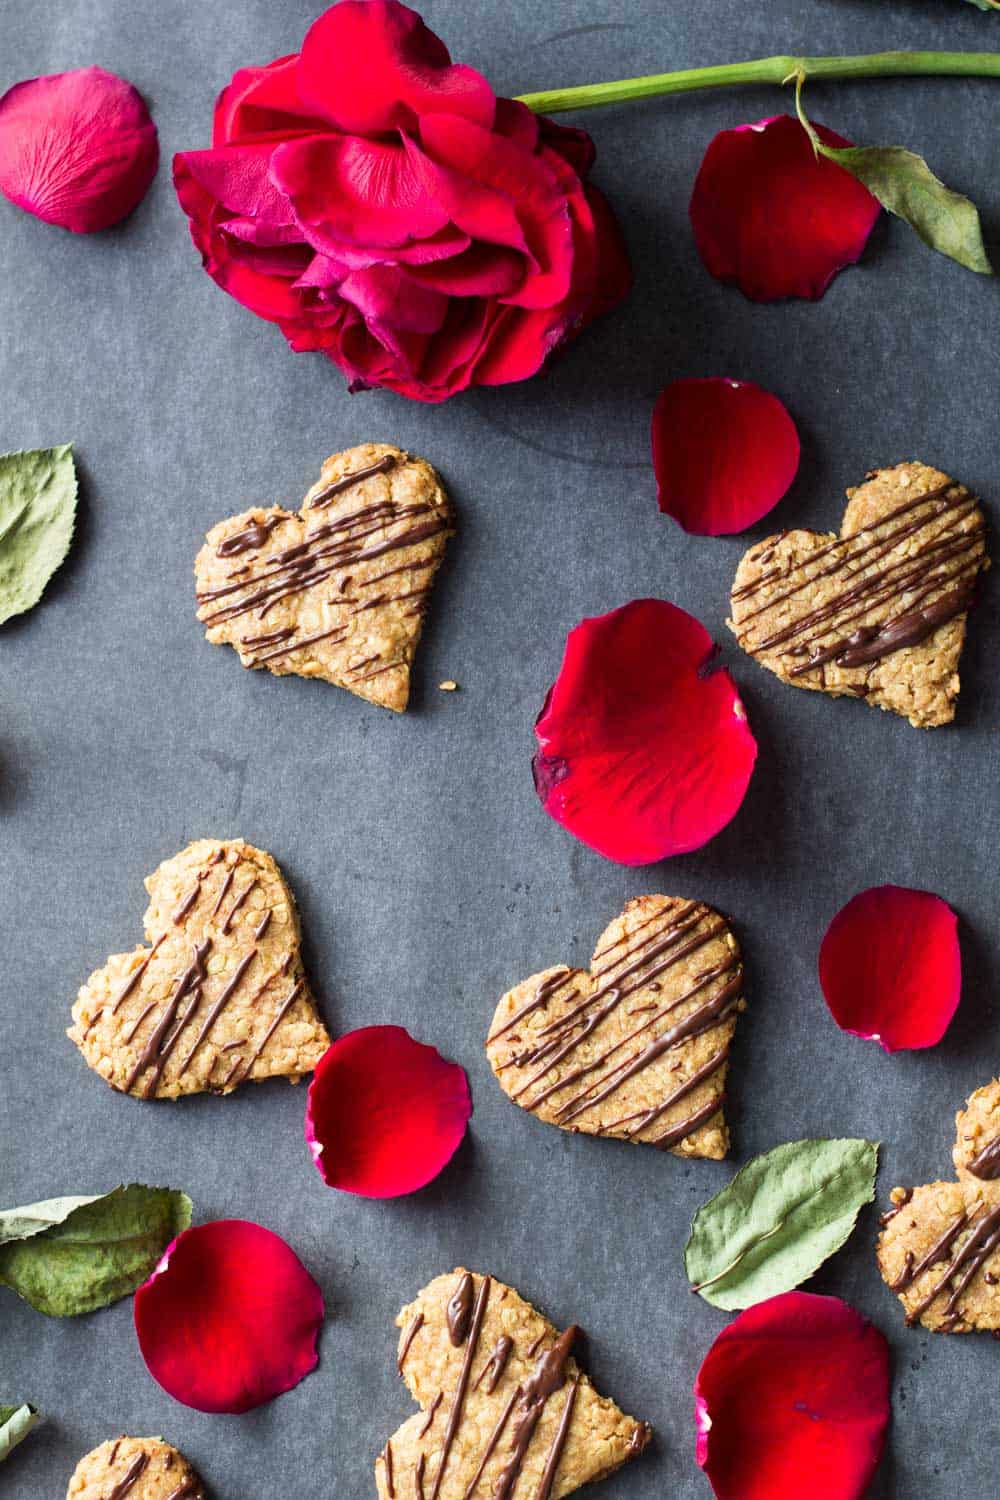 Heart-shaped spelt cookies spread on the counter with a rose and rose petals.